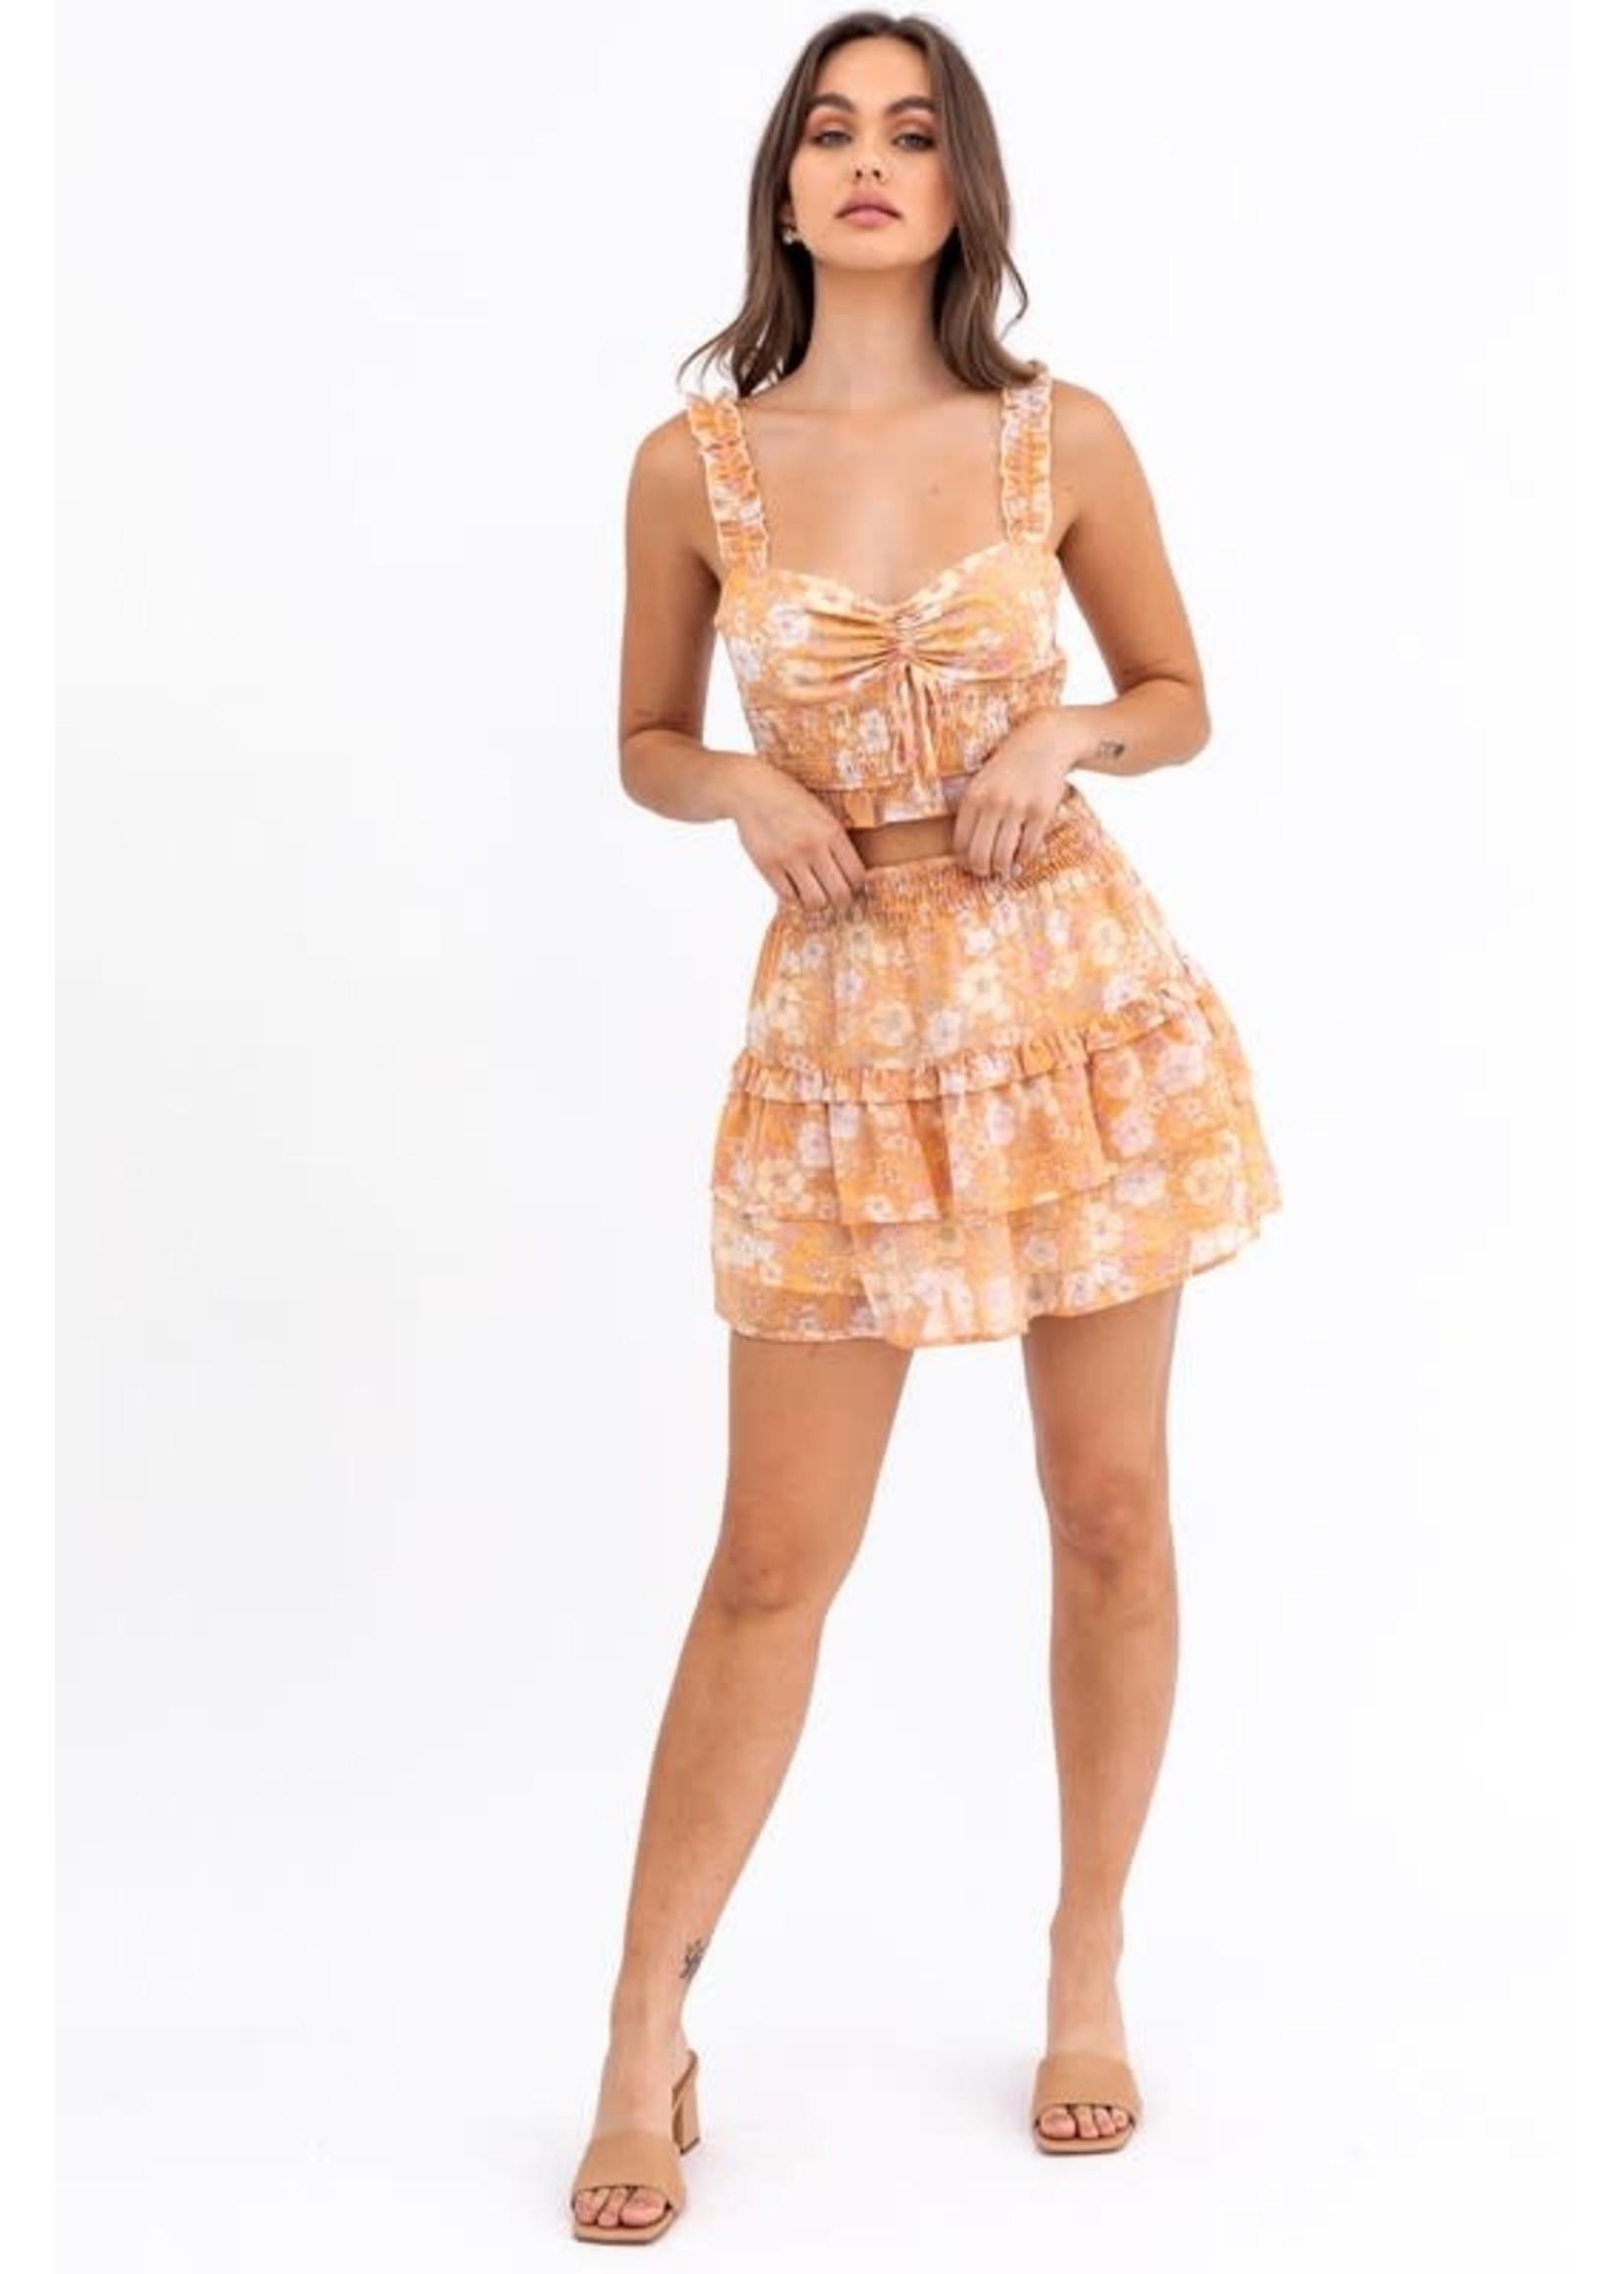 Le Lis Floral Print Ruffled Strappy Top - UT8181